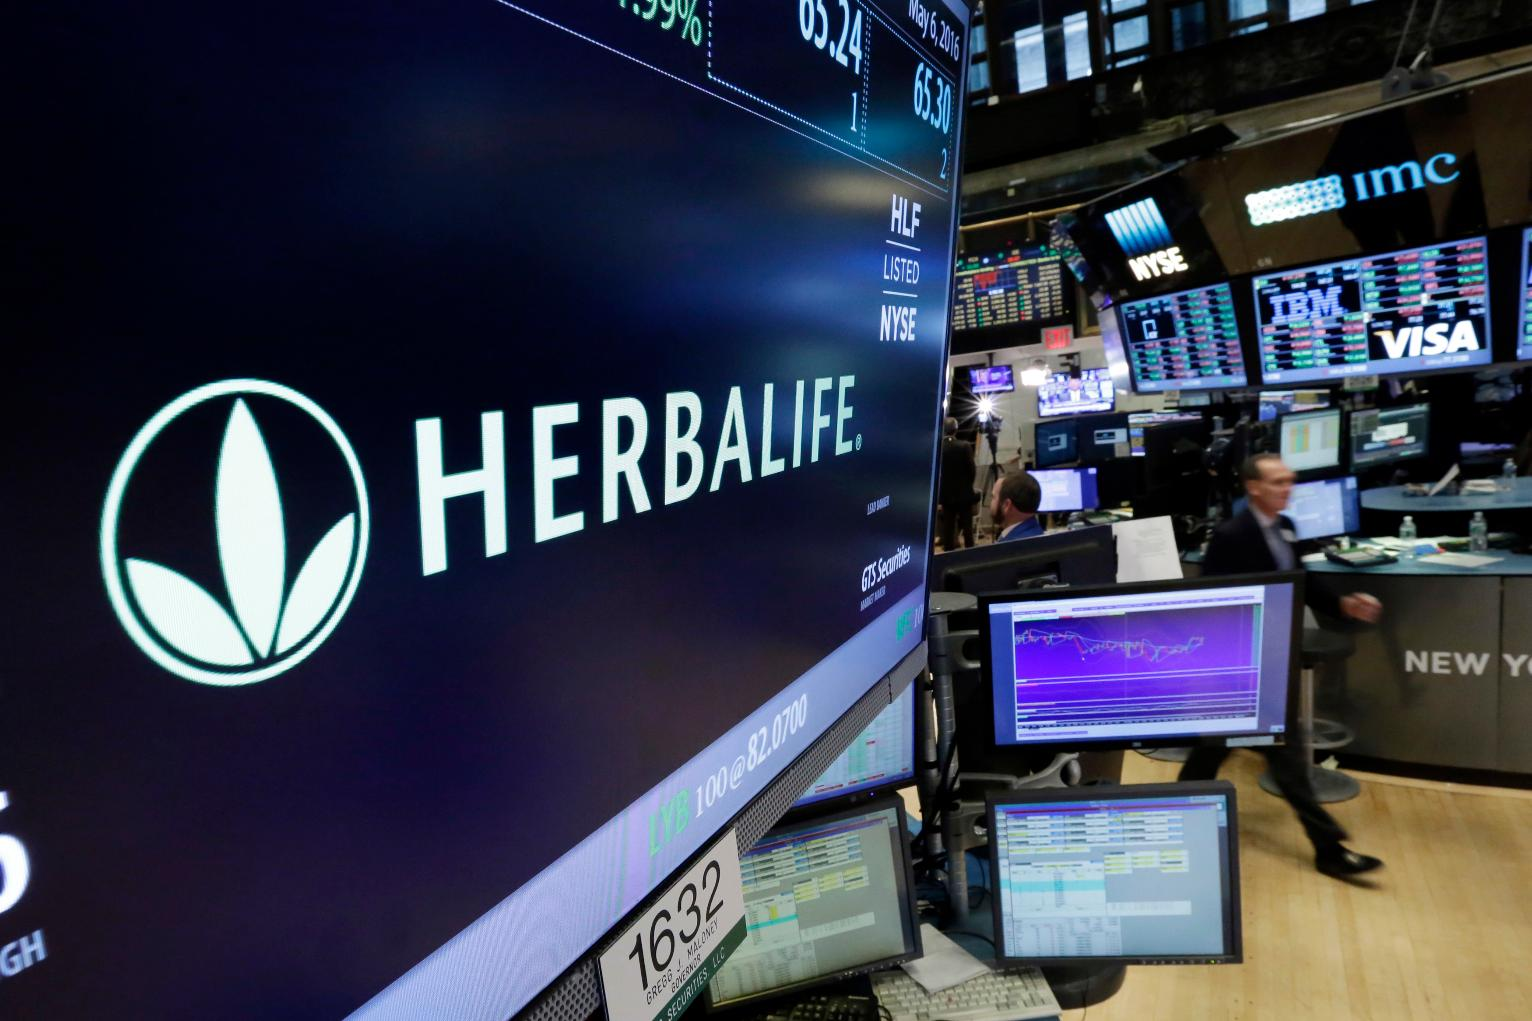 Herbalife to pay $200M, avoids more serious charges